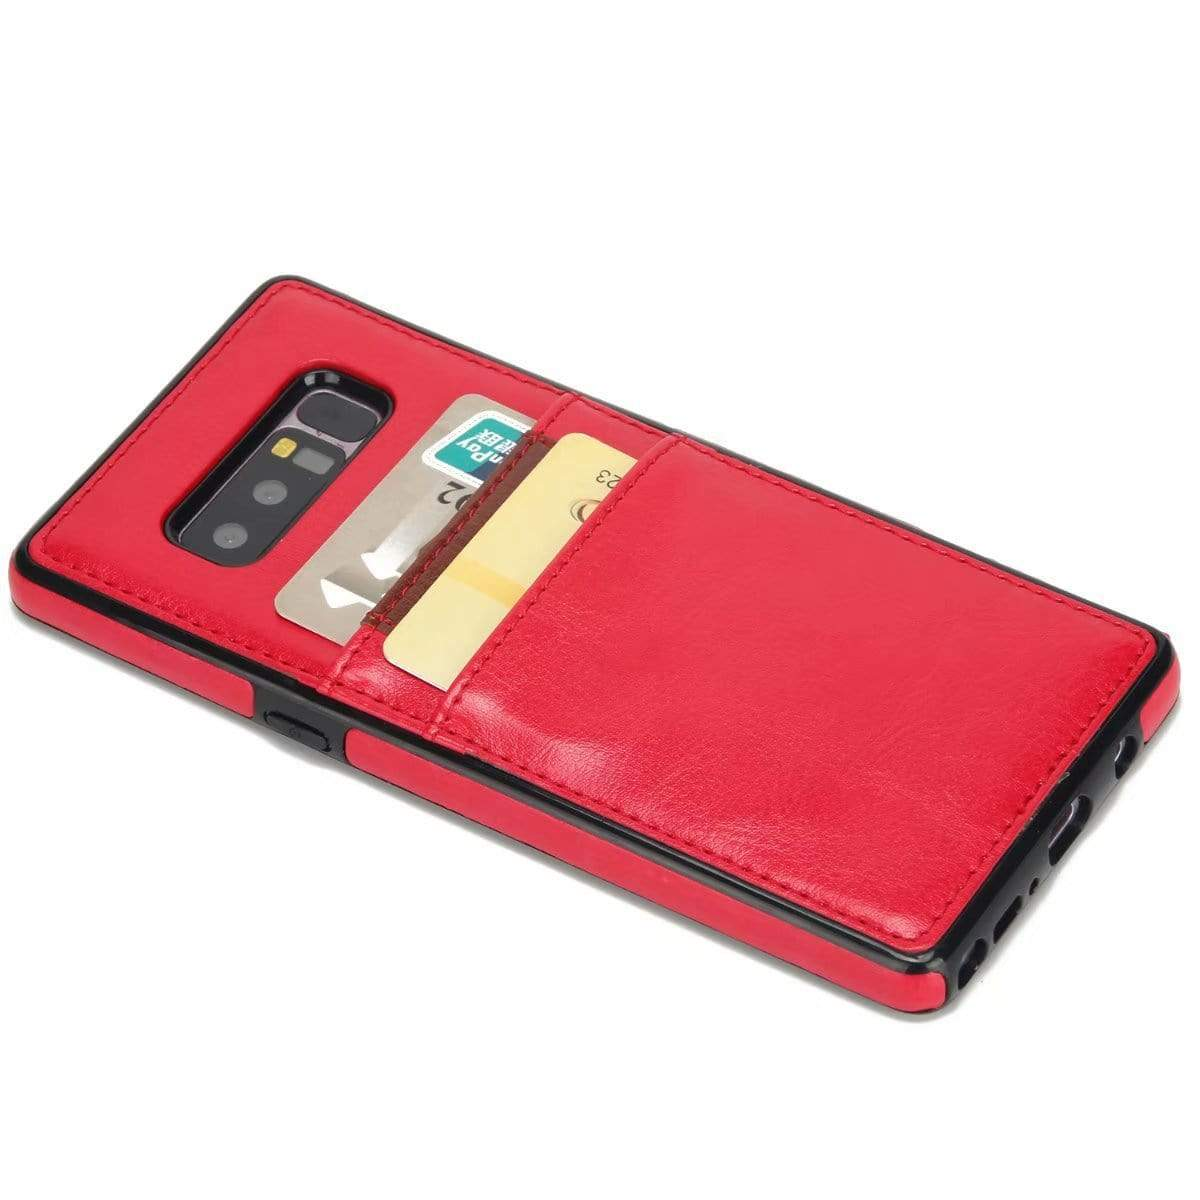 Pluggable Card Genuine Leather Phone Case For Samsung